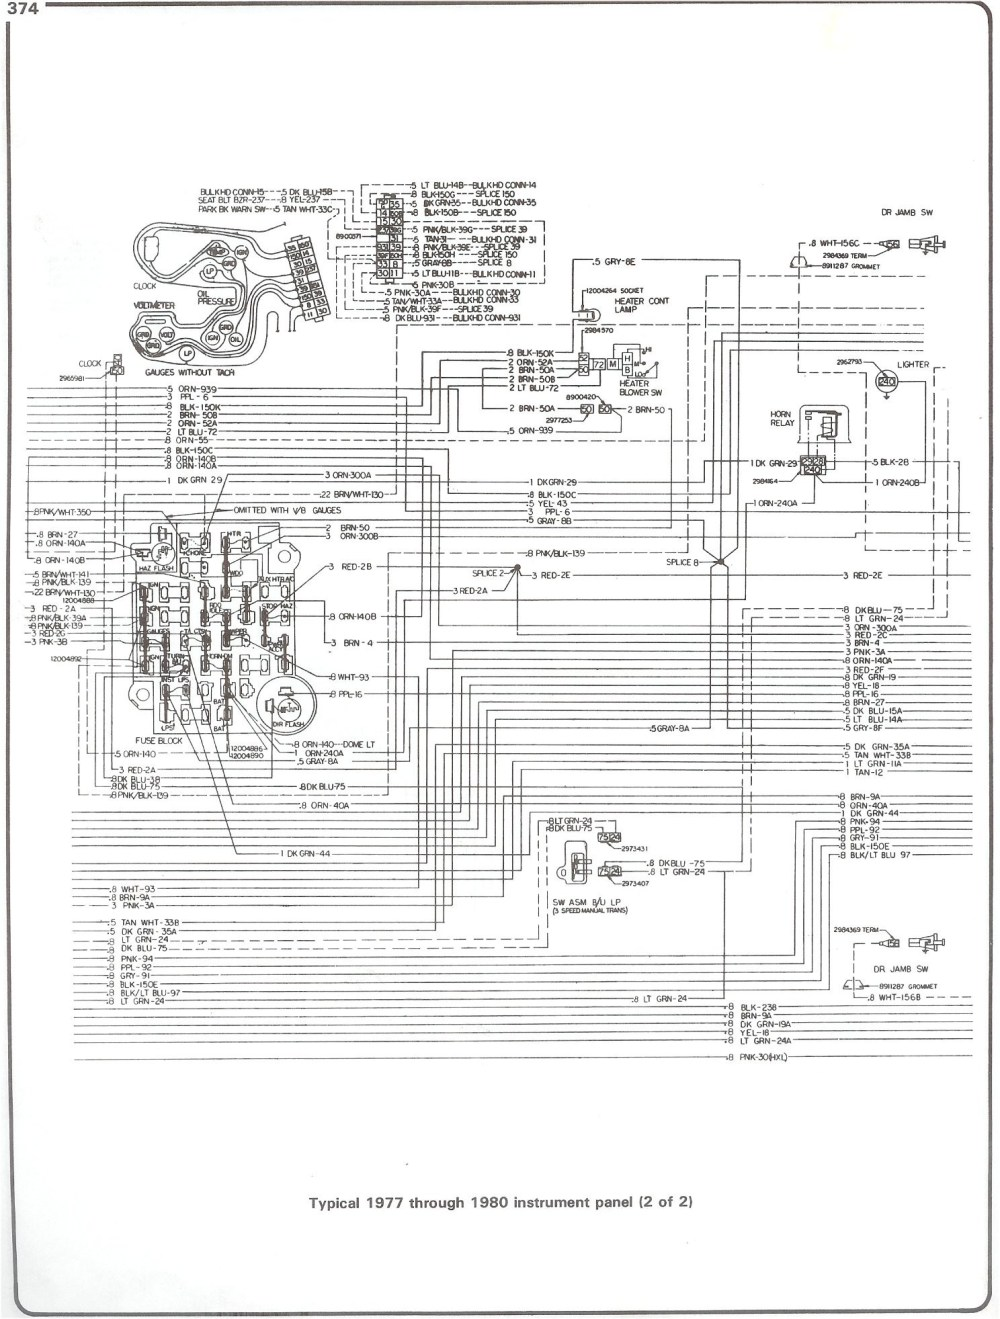 medium resolution of 81 chevy pickup wiring diagram wiring diagrams 81 chevy truck wiring diagram